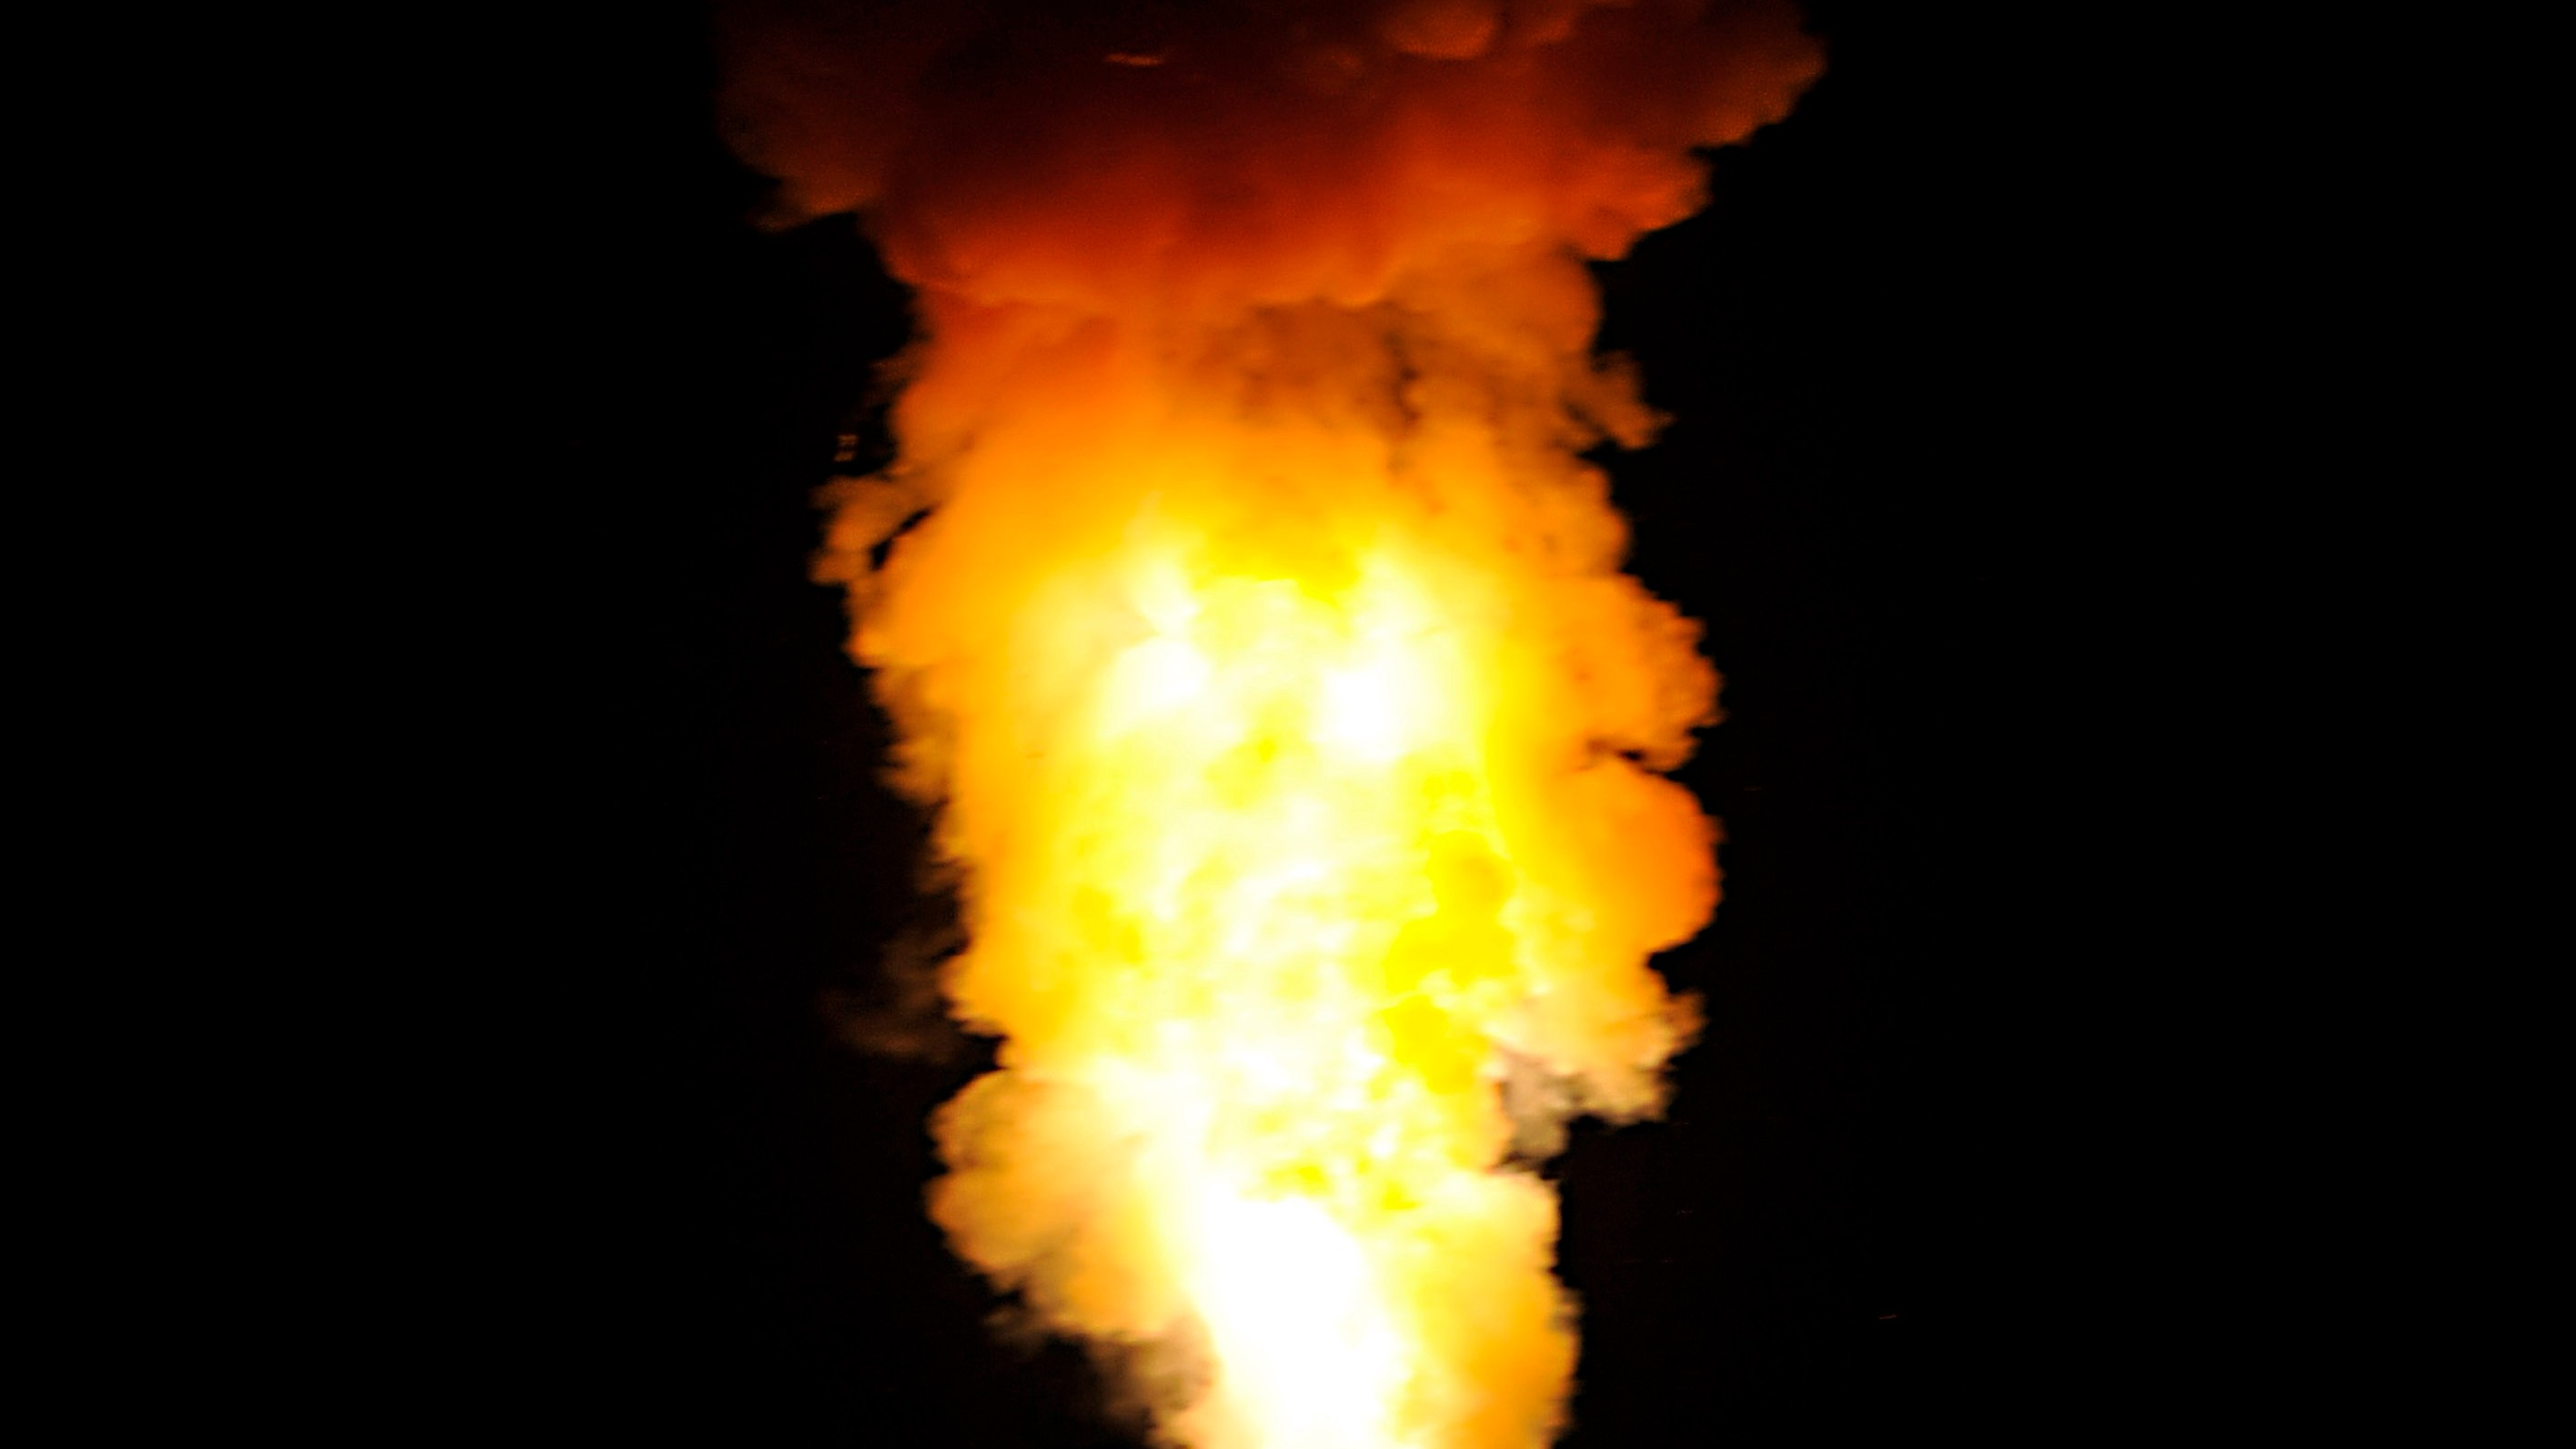 Here's Some ICBM Porn to Scrape the Holiday Cheer From Your Soul